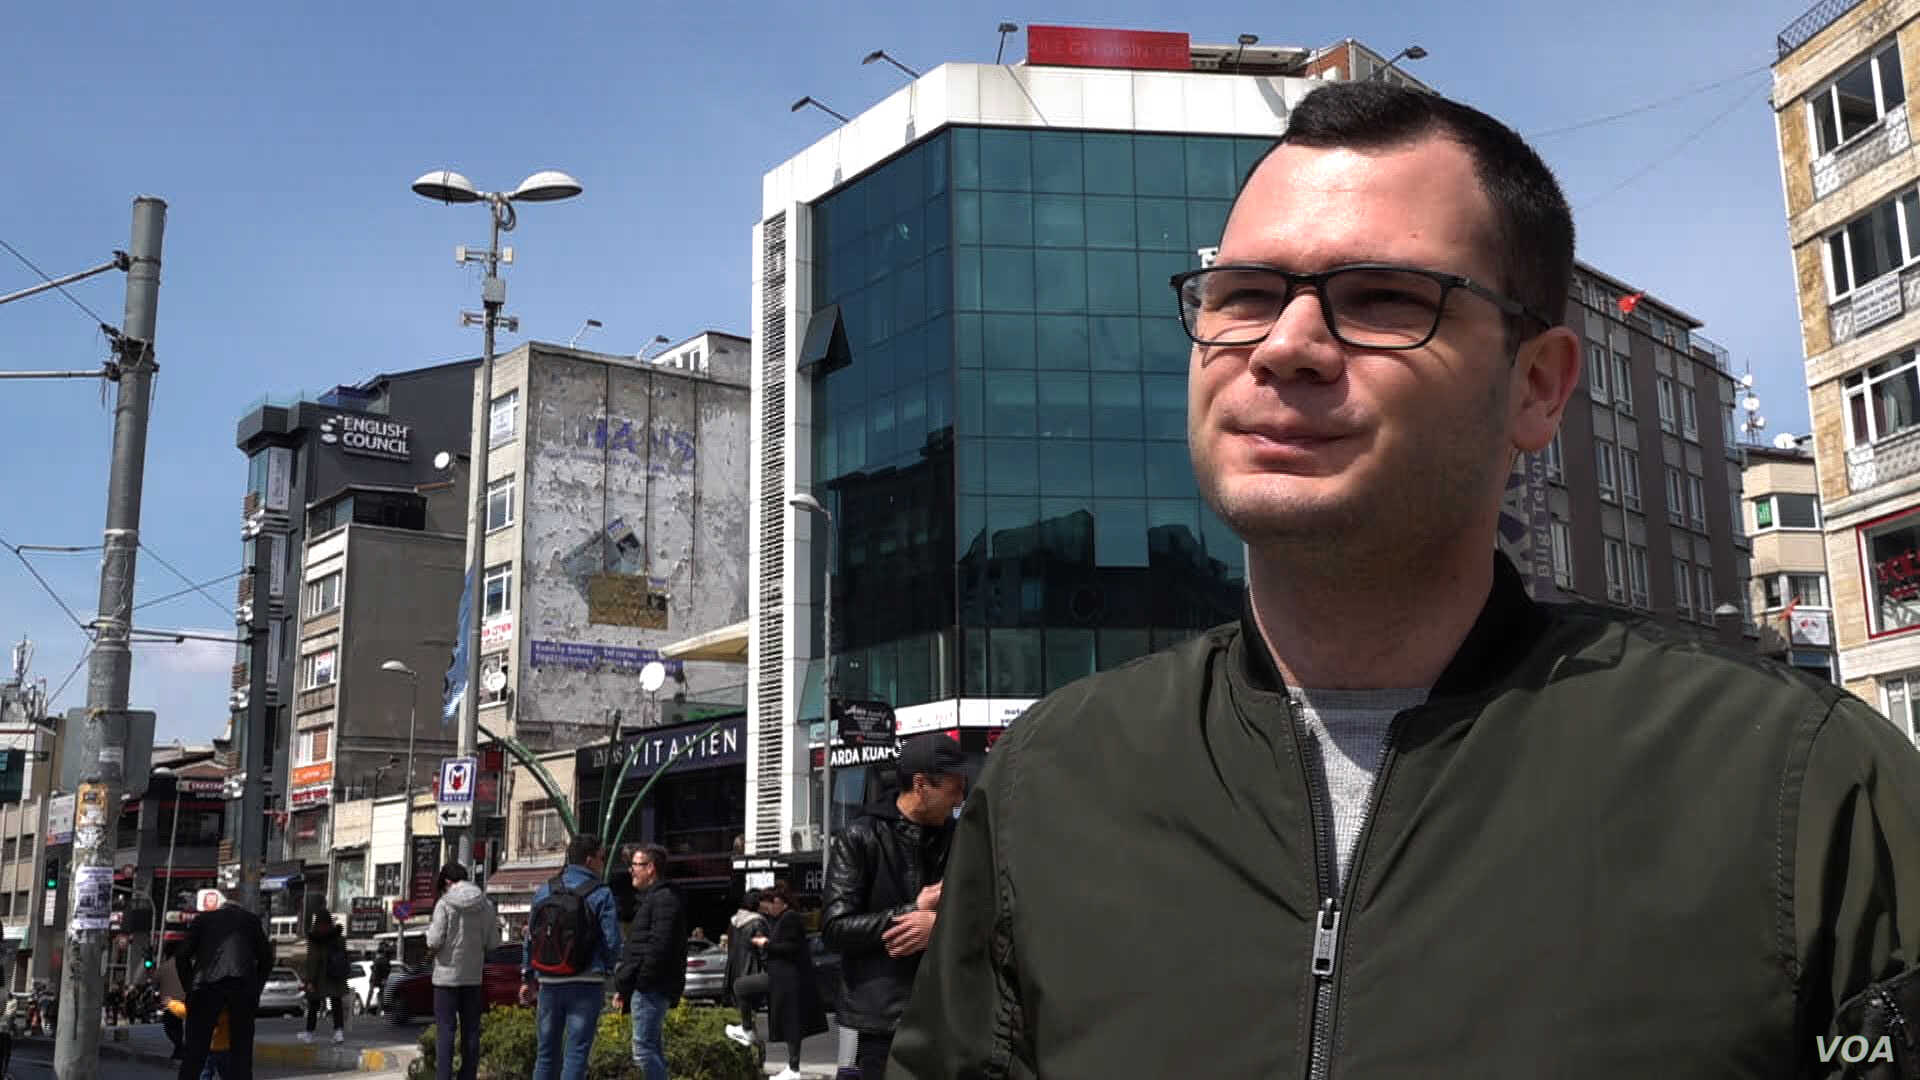 Emir, an airline worker living in Istanbul's Kadikoy district, claims the opposition CHP victory was a surprise, but offers a new future for the country.